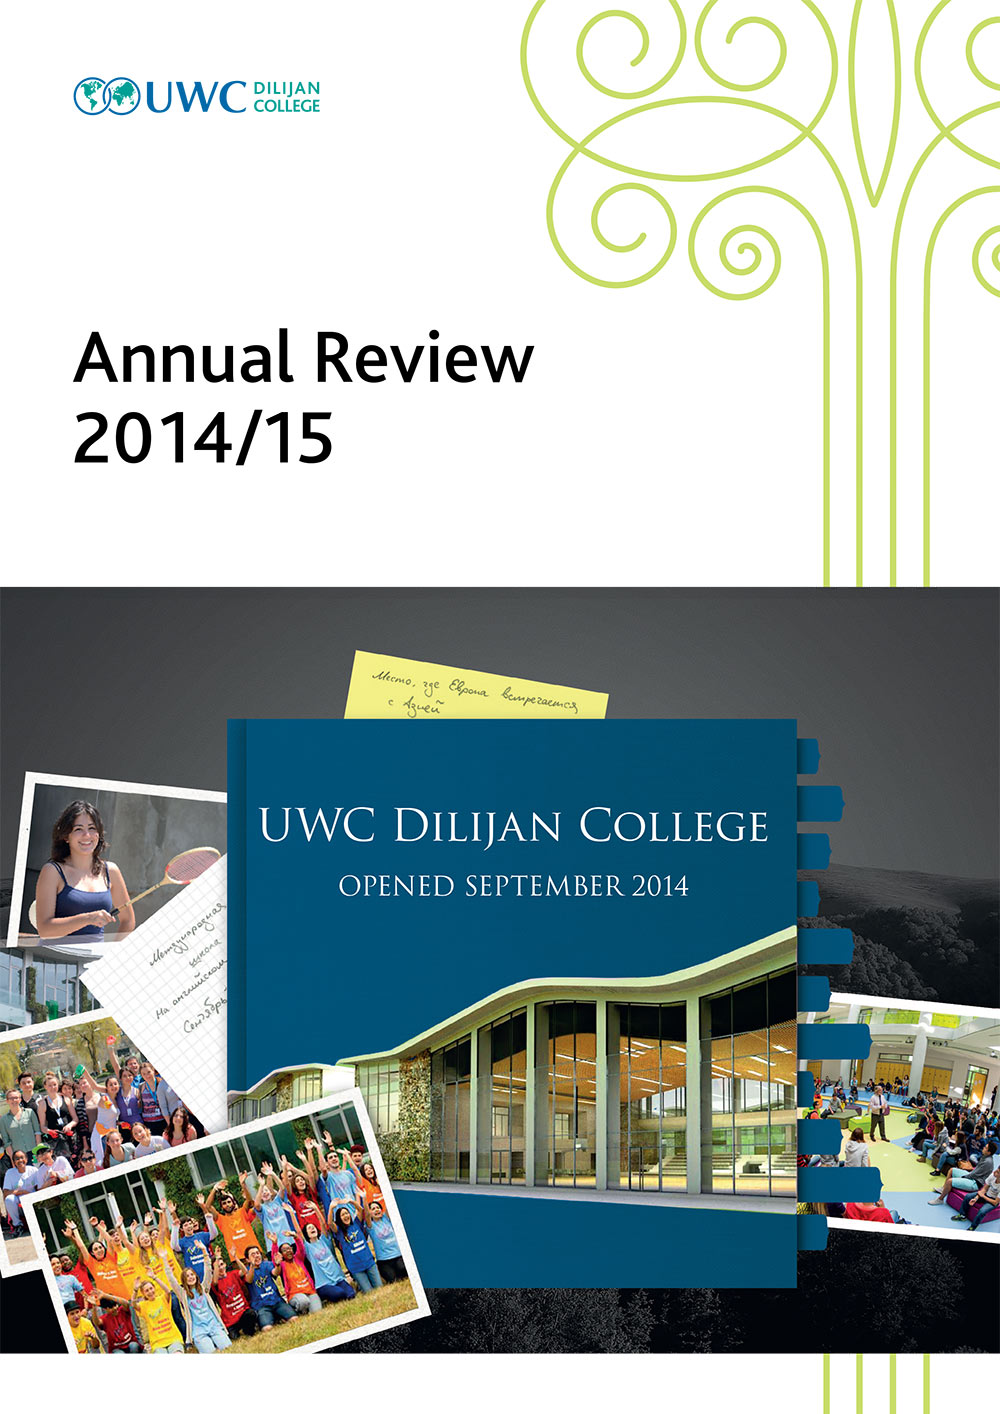 20151014 annual review 2015 eng 2015 10 26 14 31 1